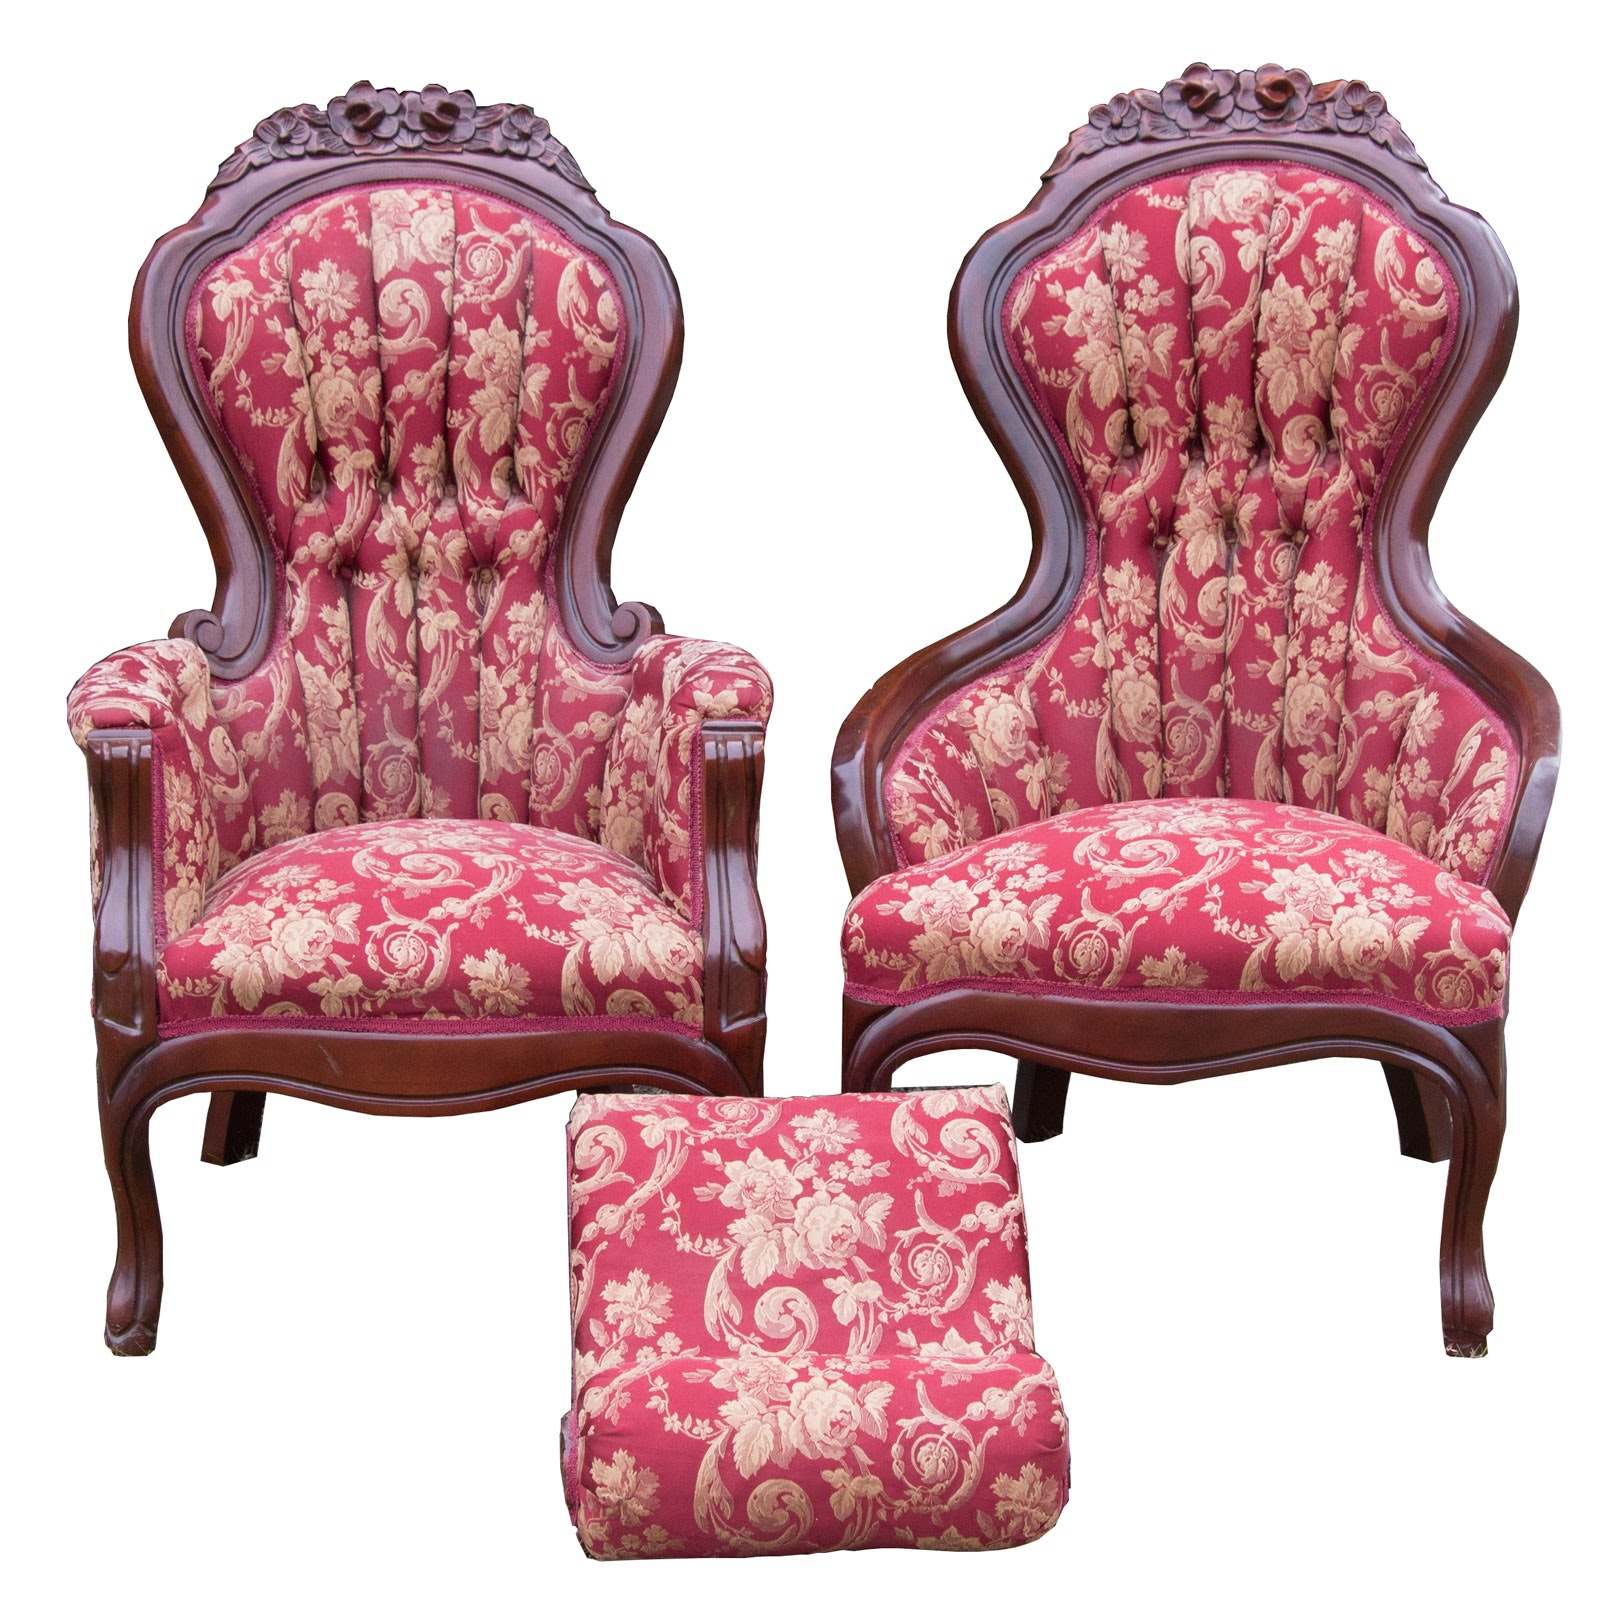 Two Victorian Style Mahogany Arm Chairs